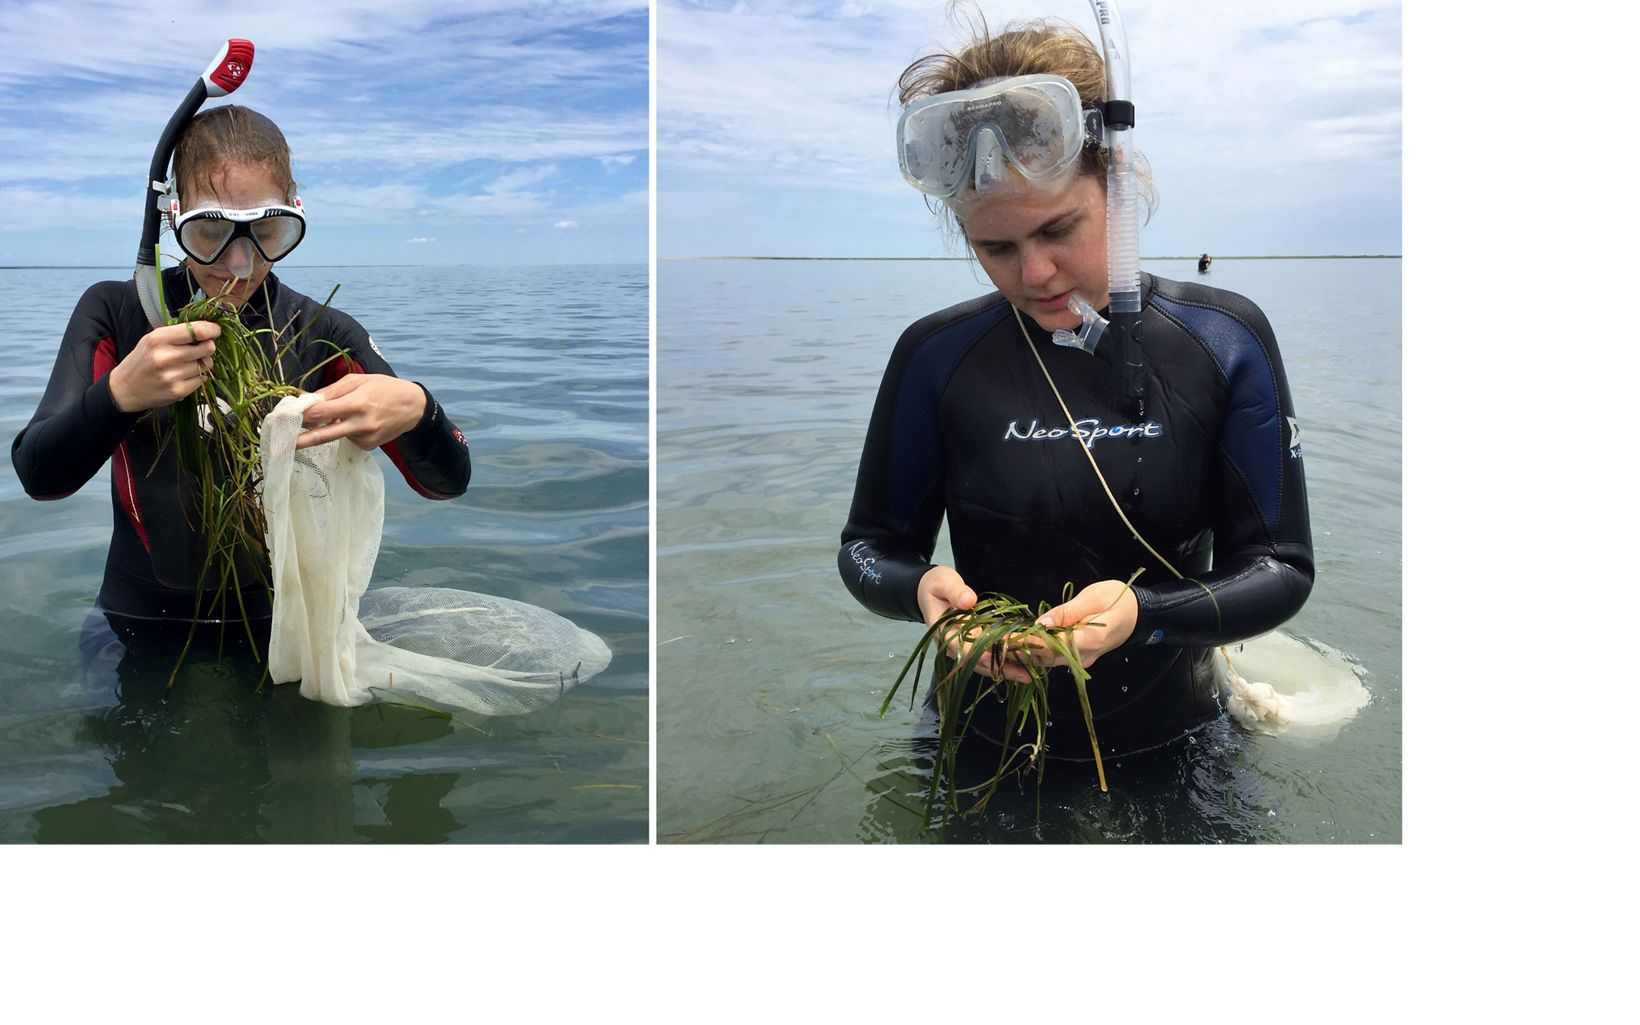 Benay Brotman (l) and Bridget Moynihan (r) collecting eelgrass during Virginia's annual volunteer event. May, 2019.